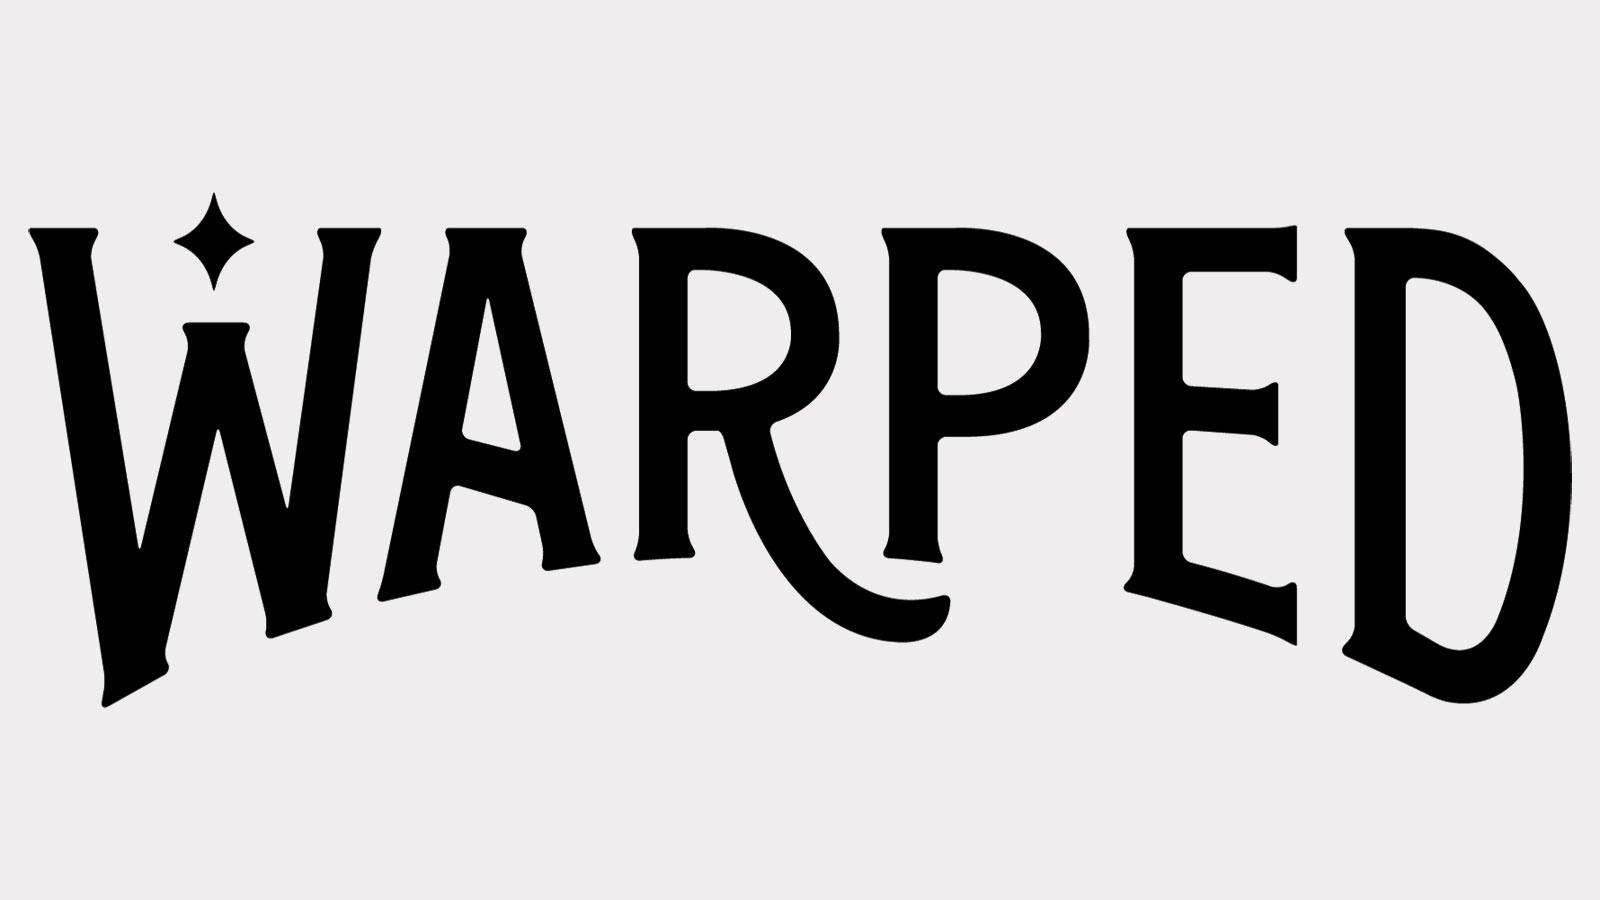 Warped Launching New Size of Flor del Valle this Summer